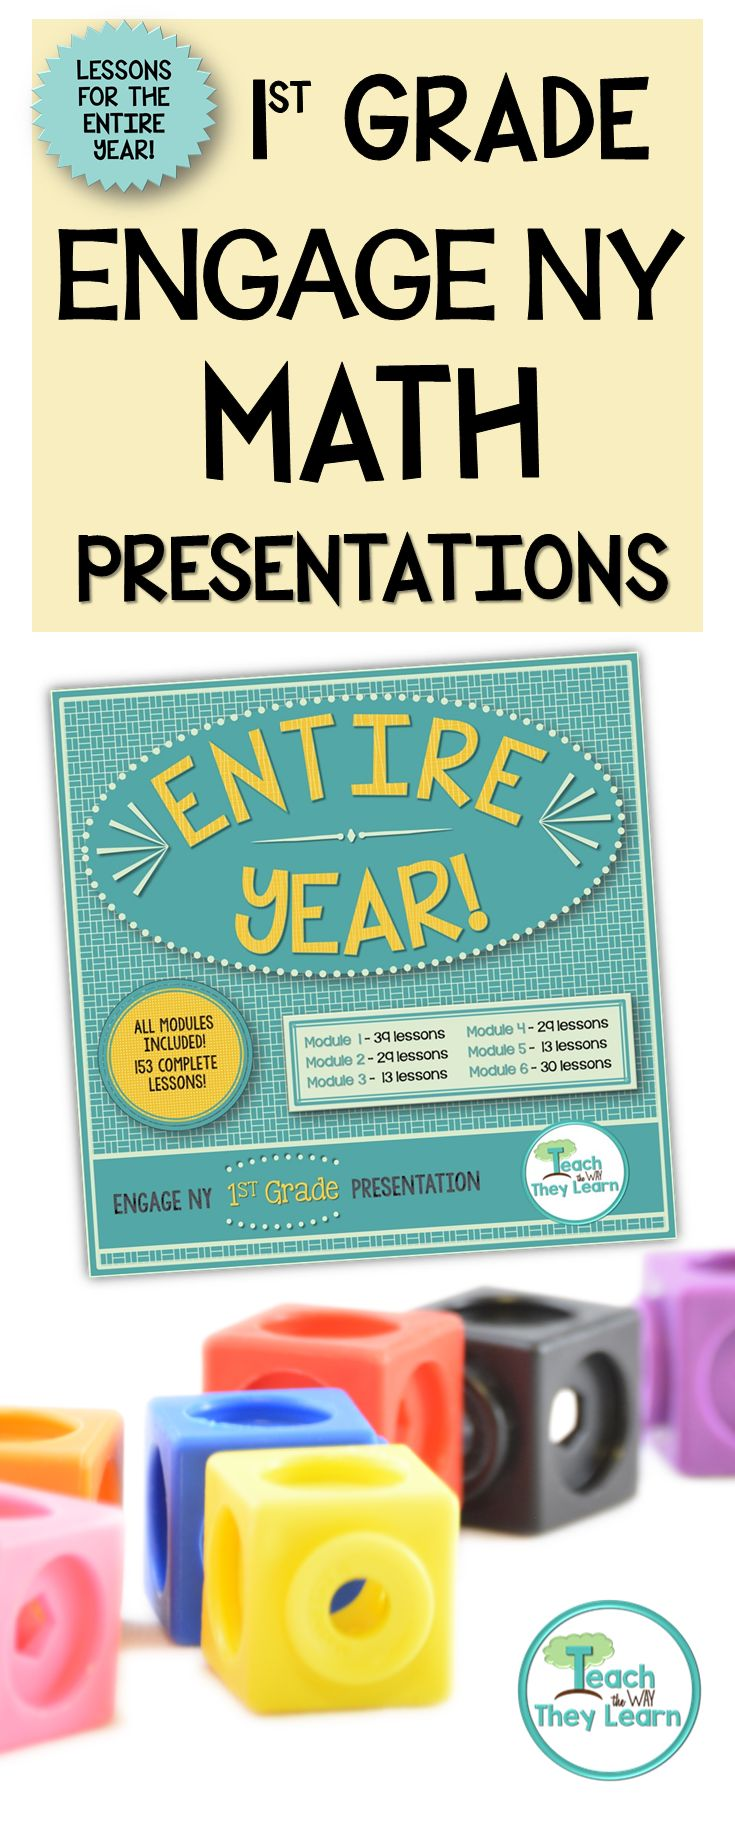 These Engage NY (Eureka Math) First Grade Math Presentations are easy to follow. The entire Engage NY/Eureka Math 1st grade math lesson is ready for you to teach – just follow the slides! Great option for subs in the class!